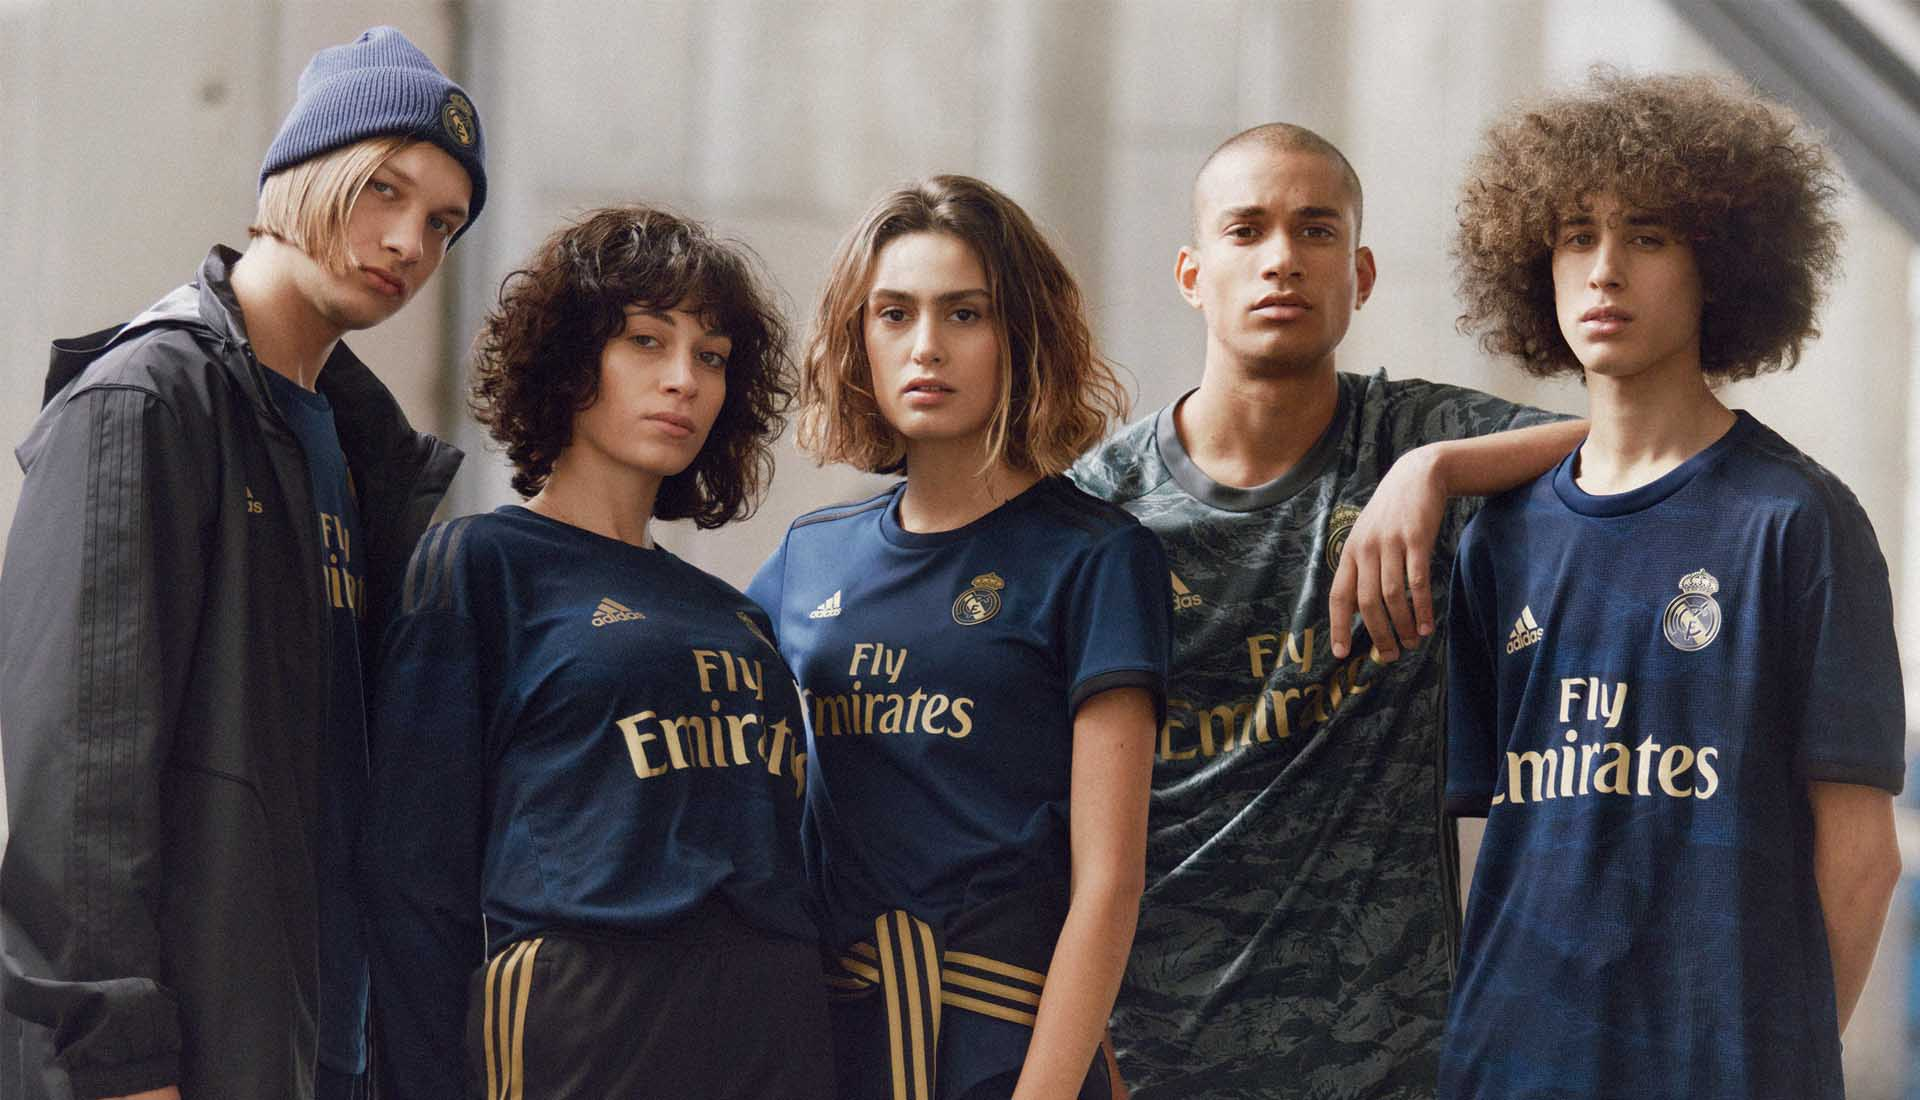 Real Madrid away jersey 19/20